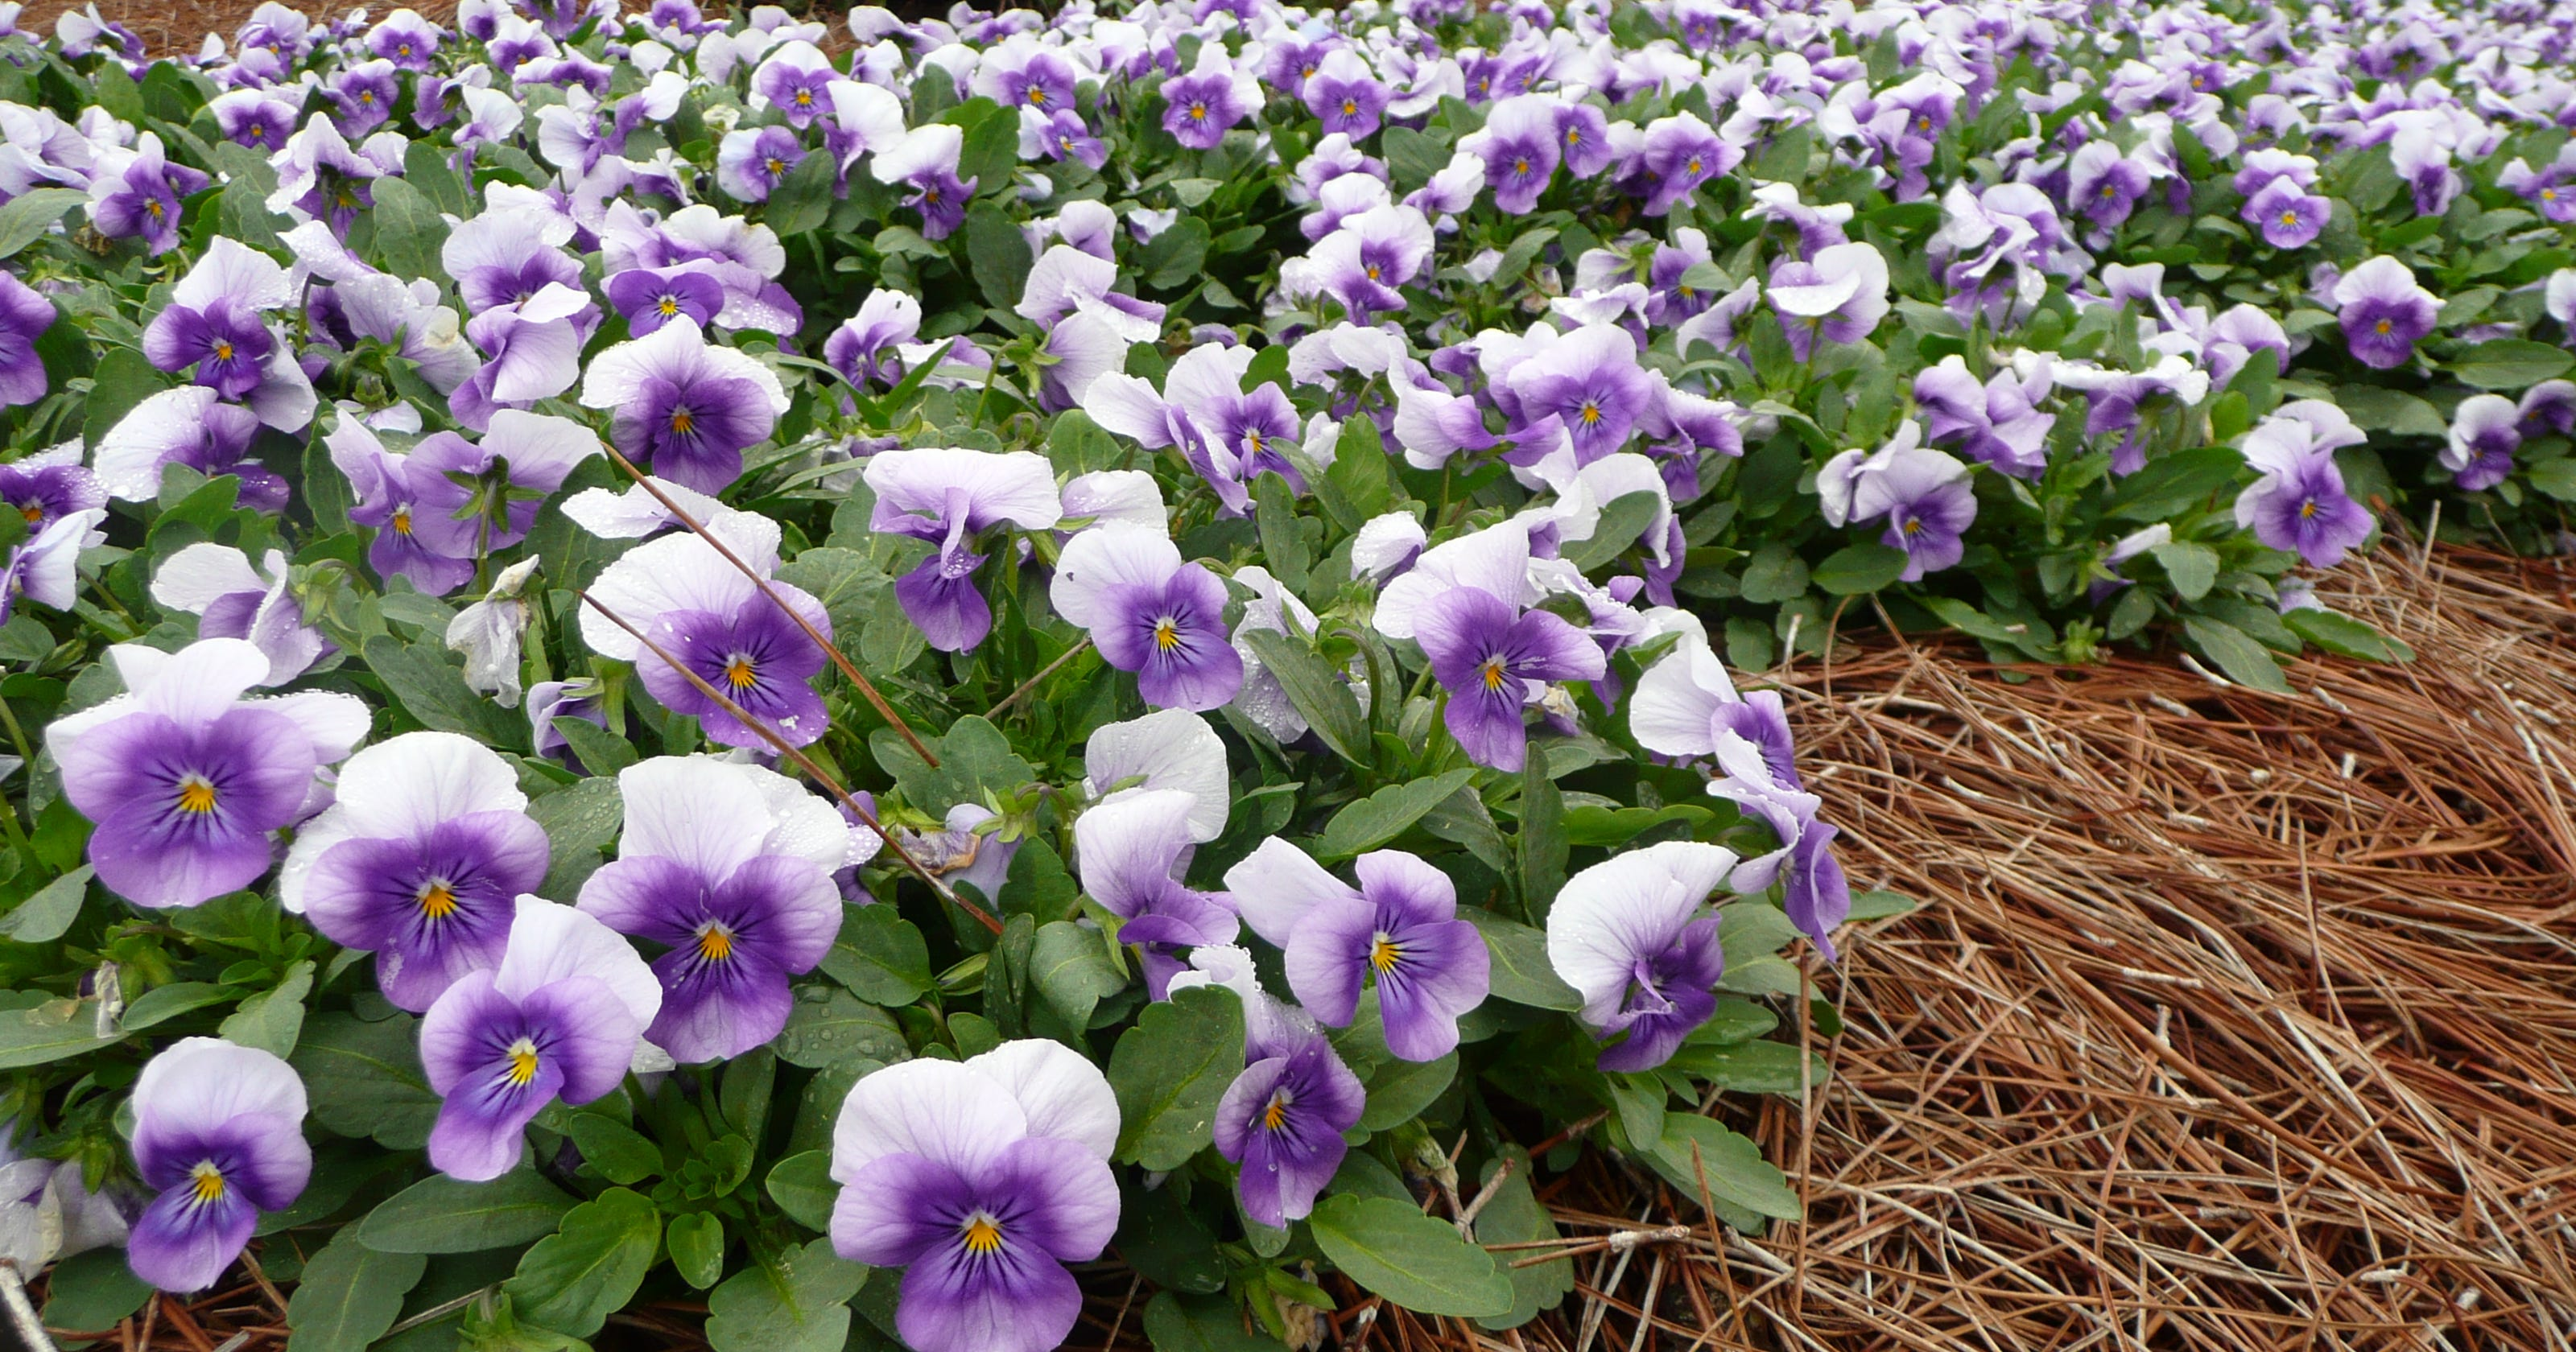 Perfect winter annuals pansies and violas are hardy in east tn chill izmirmasajfo